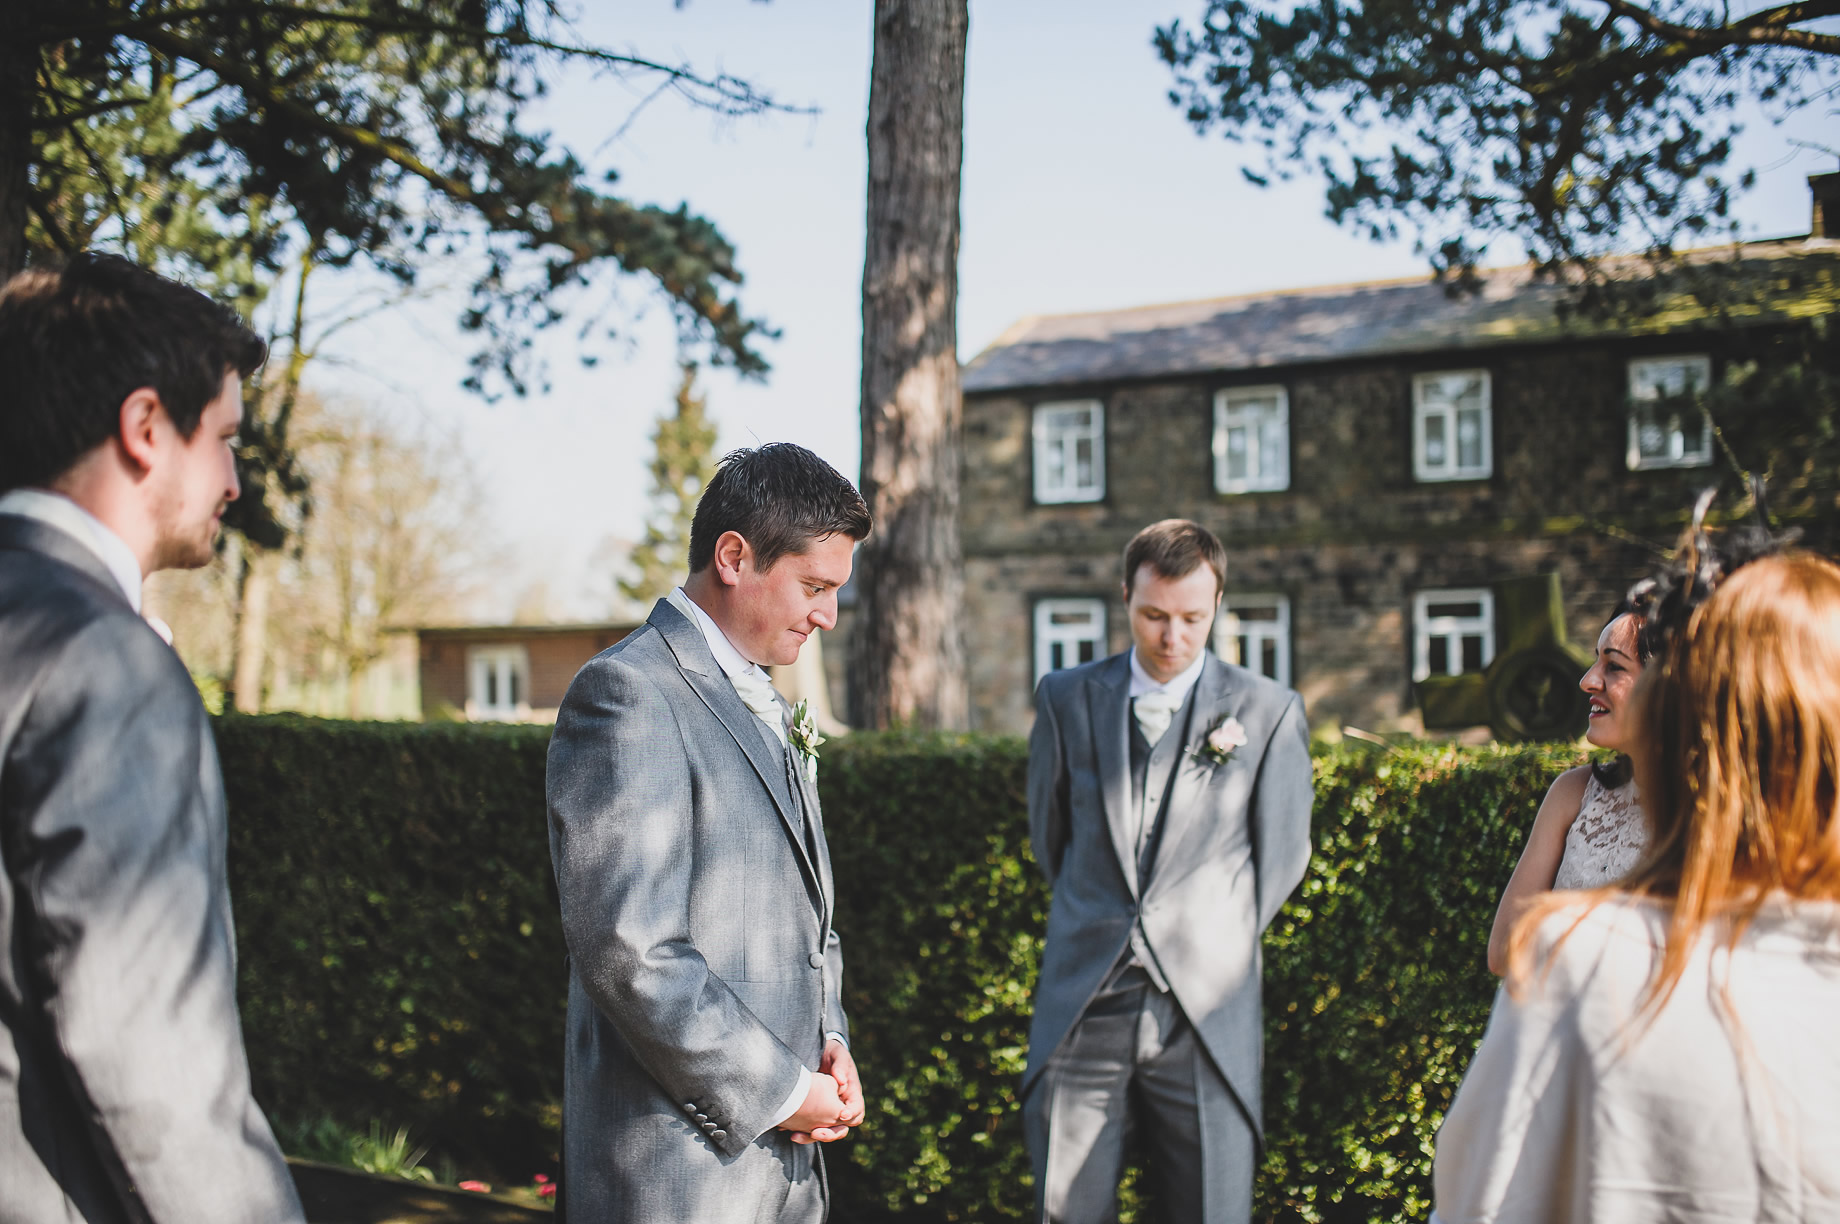 Charlotte and Will's Wedding at Mitton Hall - A Preview 010